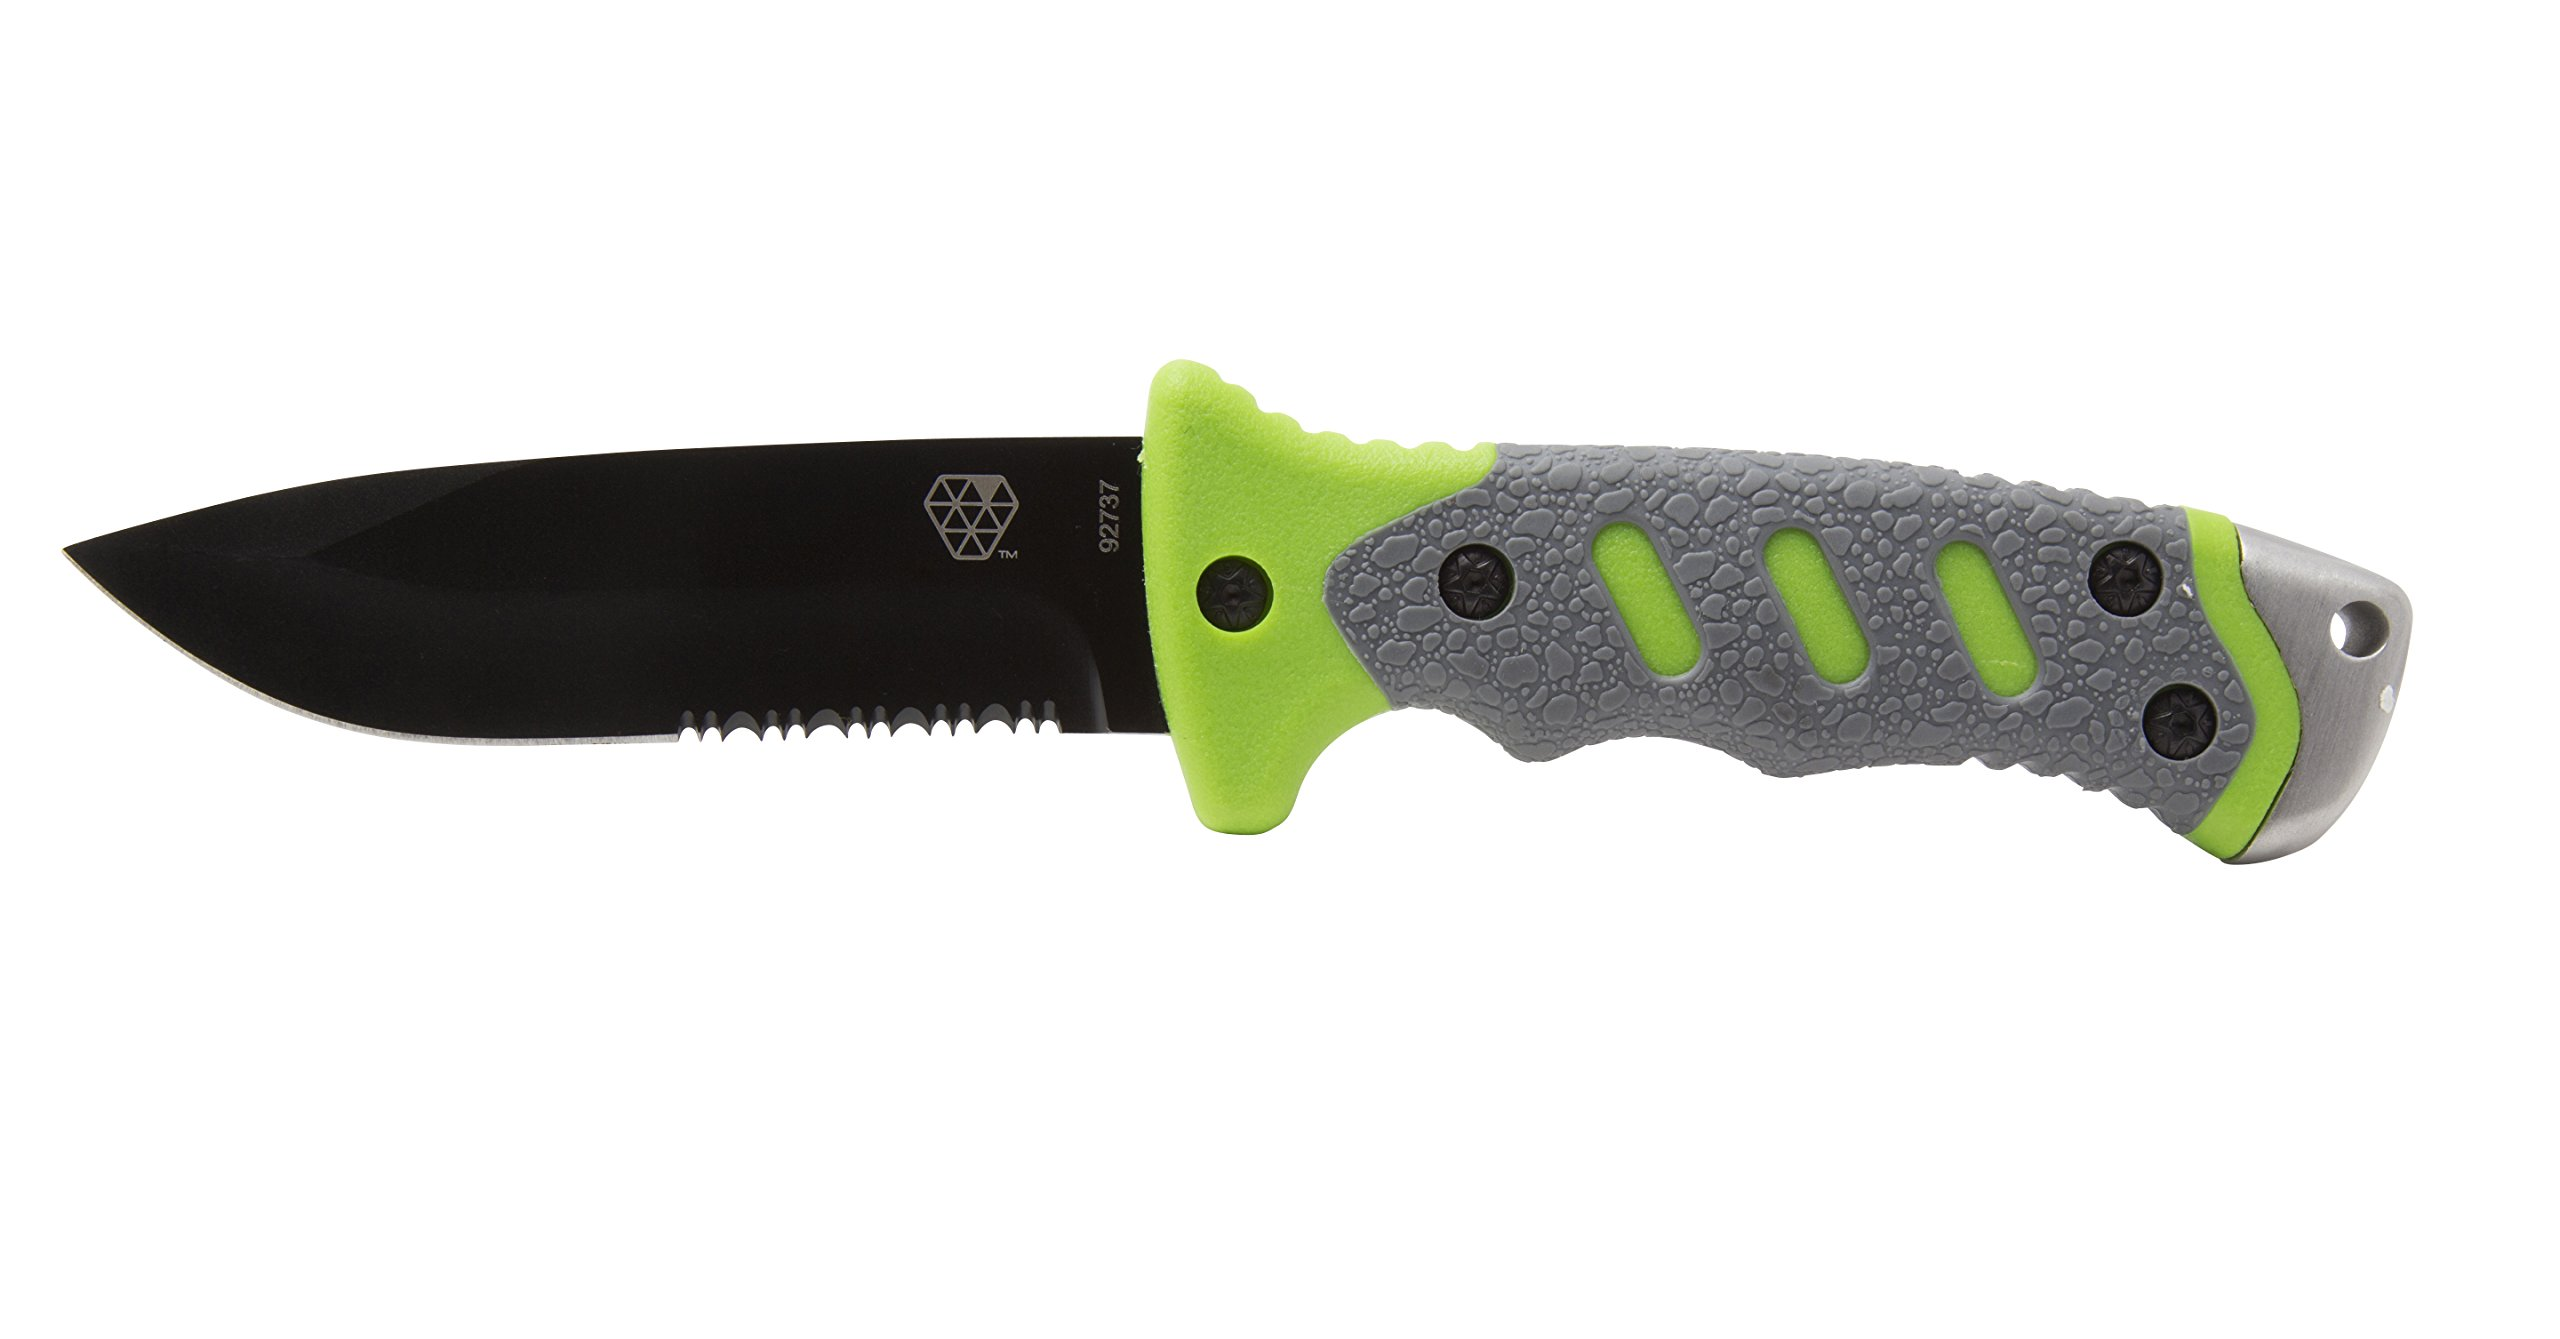 Boundary 92737 Outdoor Survival Knife with Fixed 4.5-inch Partially Serrated 420 Stainless Blade and Sheath, Survival Tools by Boundary (Image #4)